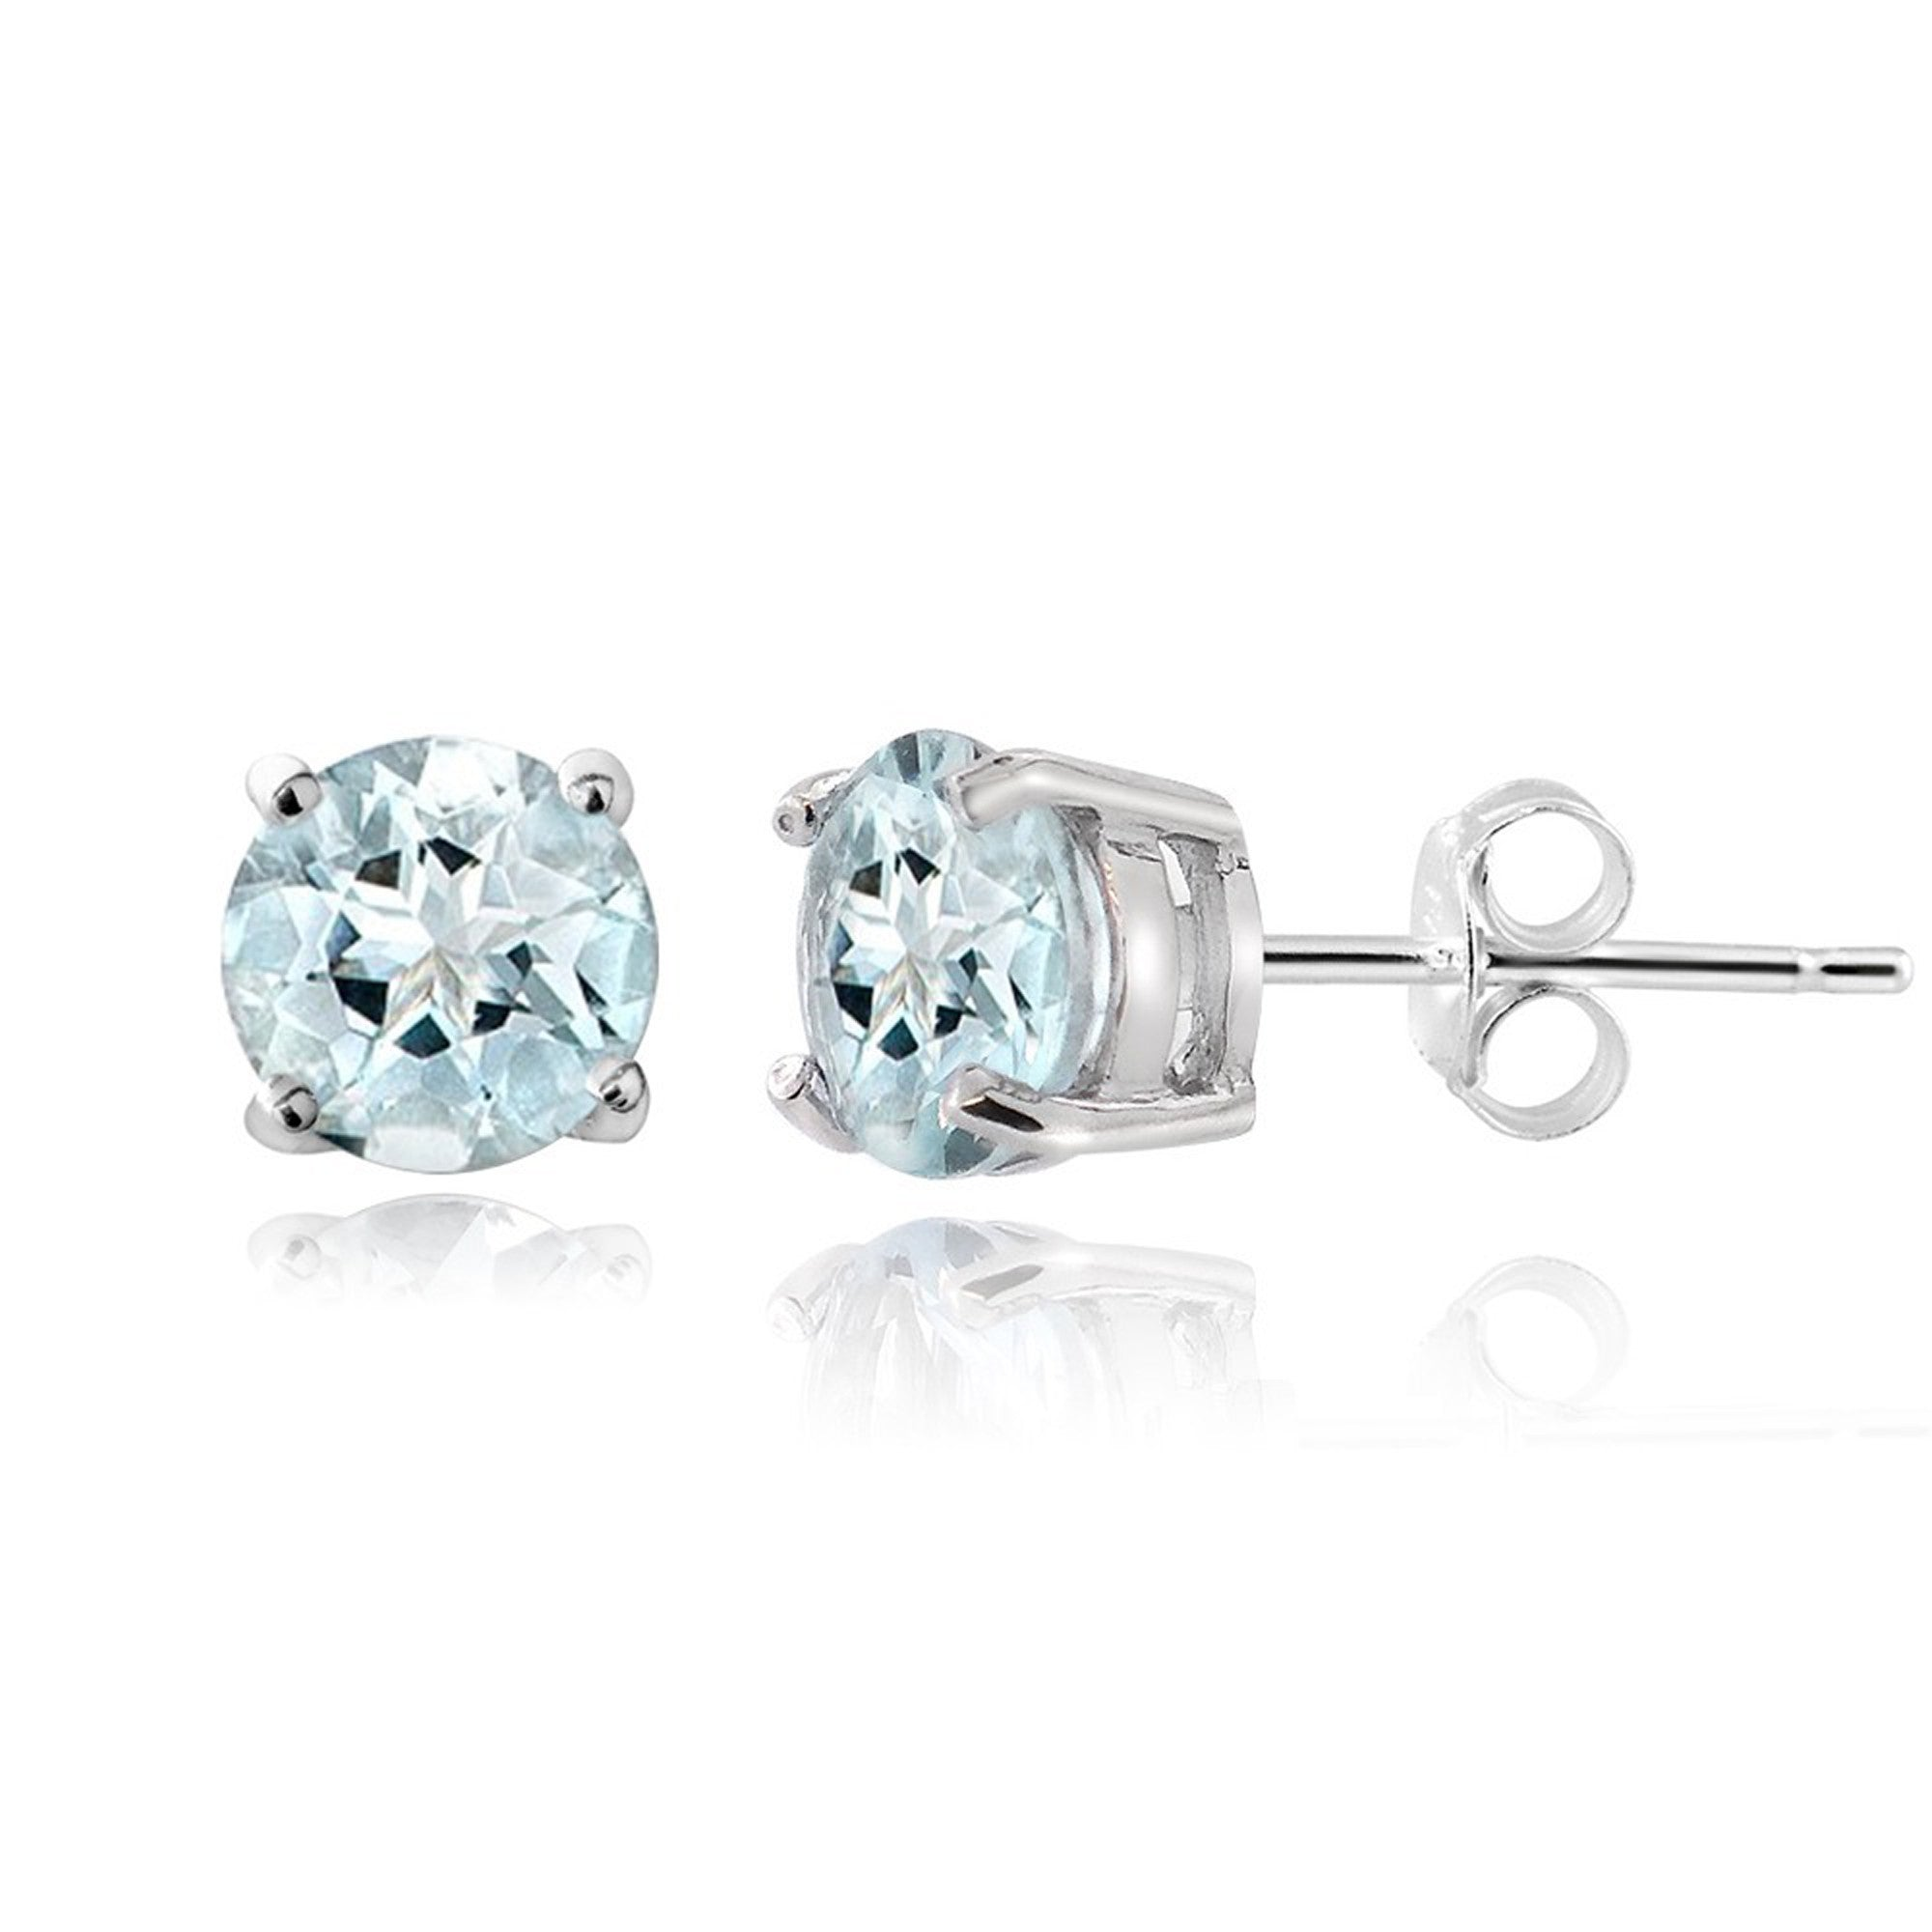 Sterling Silver Gemstone Accent Butterfly Clasp Stud Earrings - Aquamarine